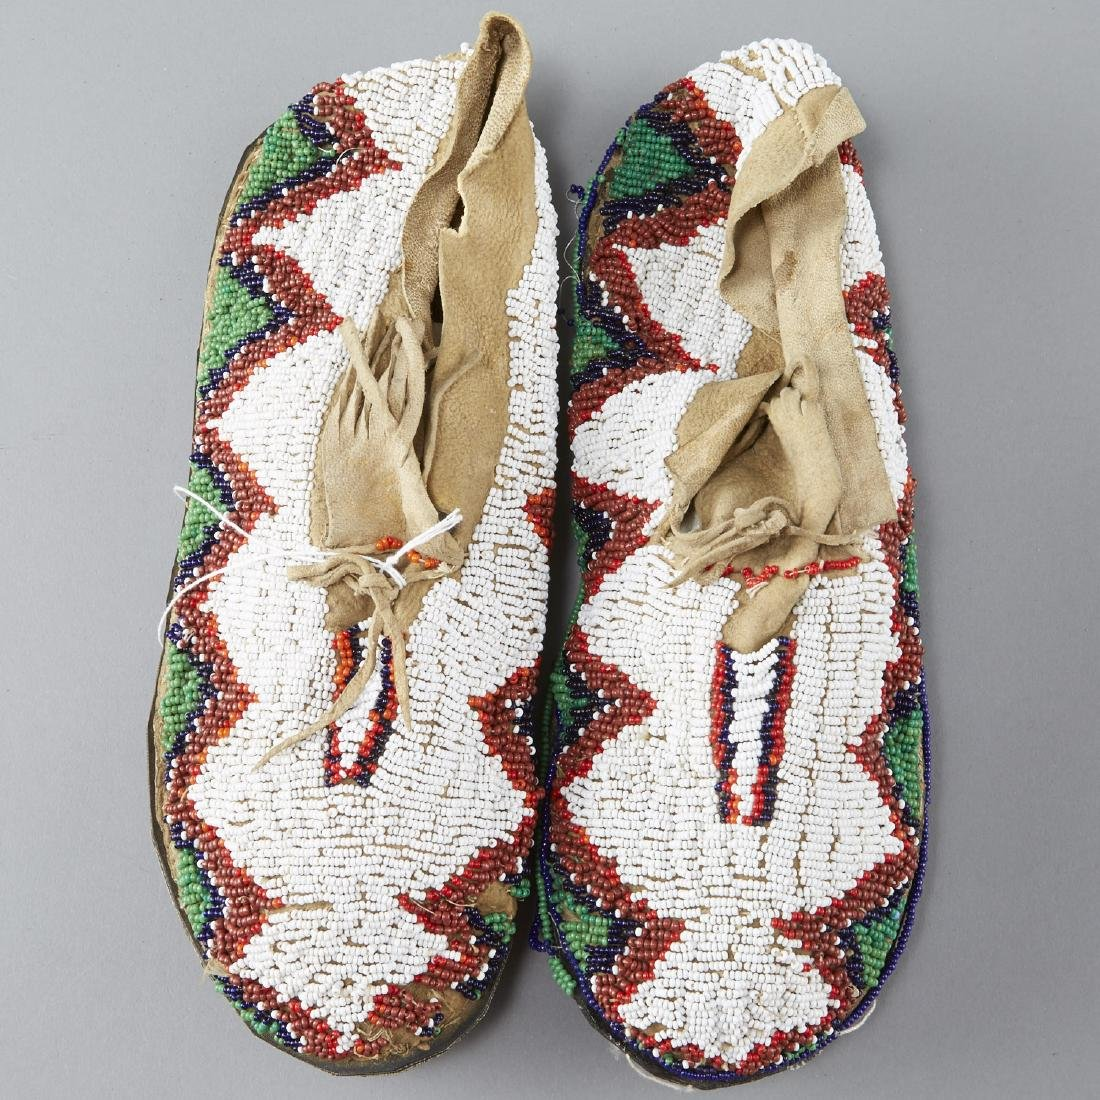 7 Pairs Beaded Moccasins - 8